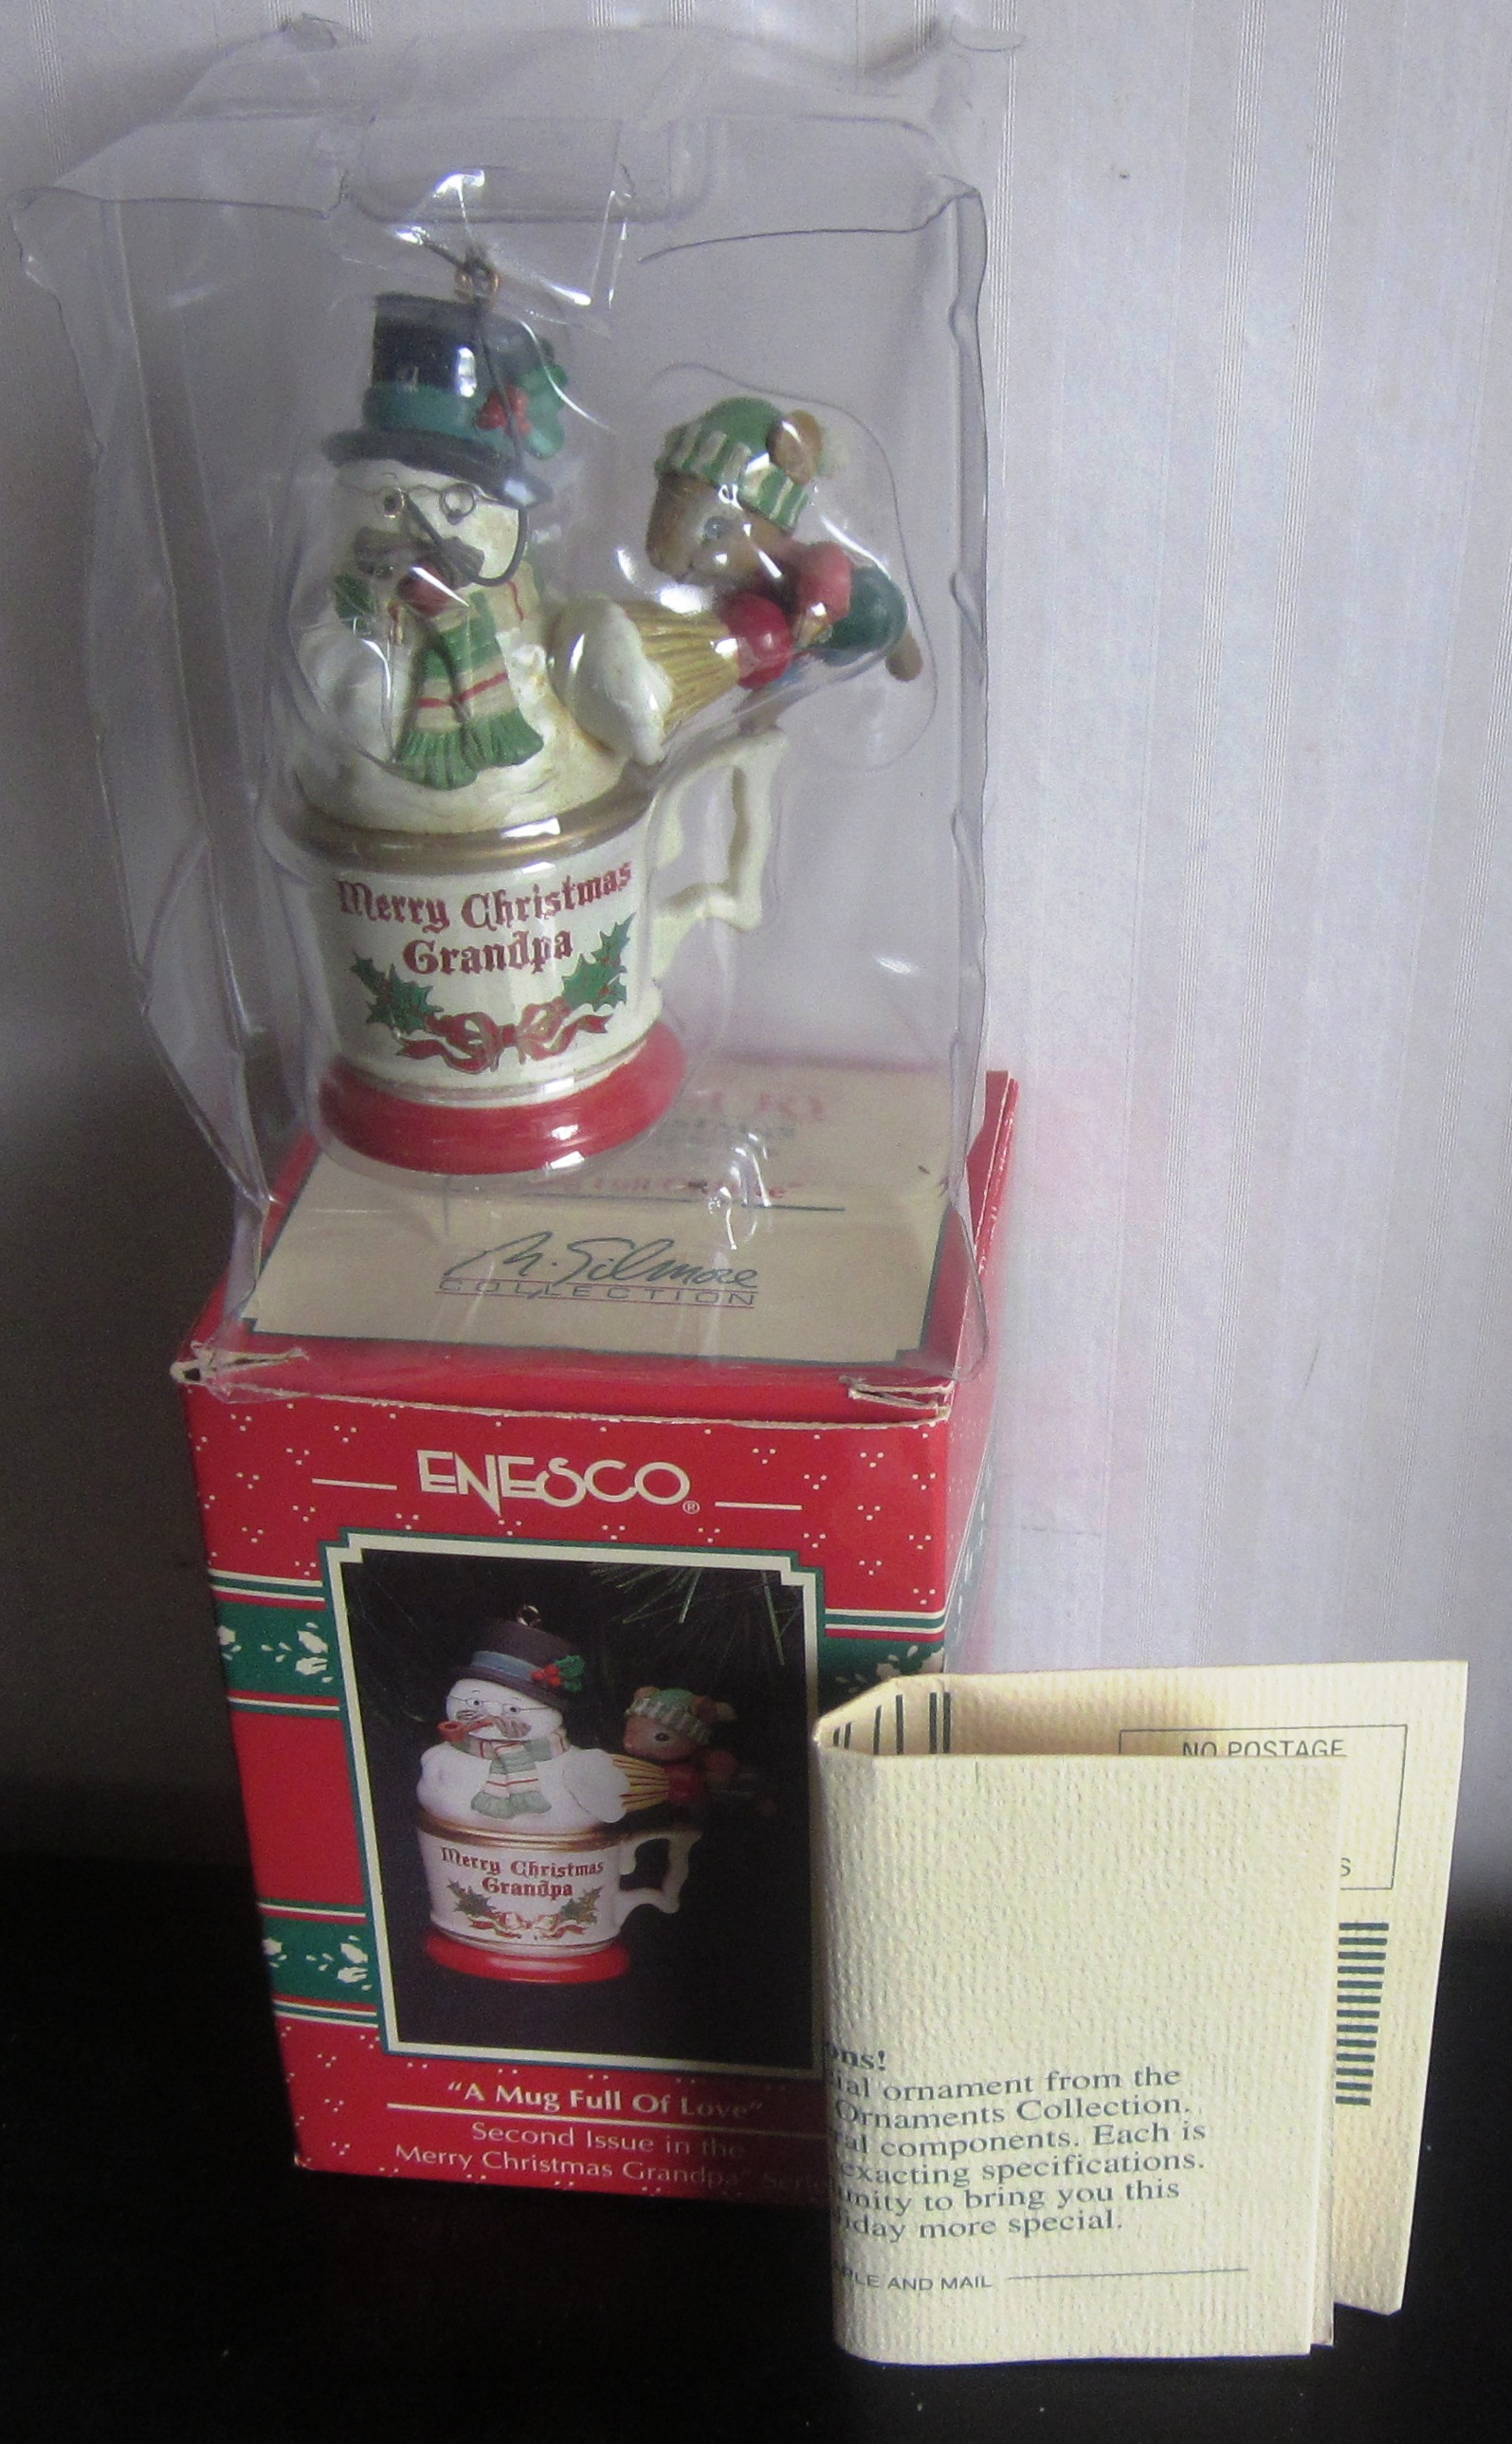 Enesco A Mug Full Of Love Merry Christmas Grandpa Mug Ornament